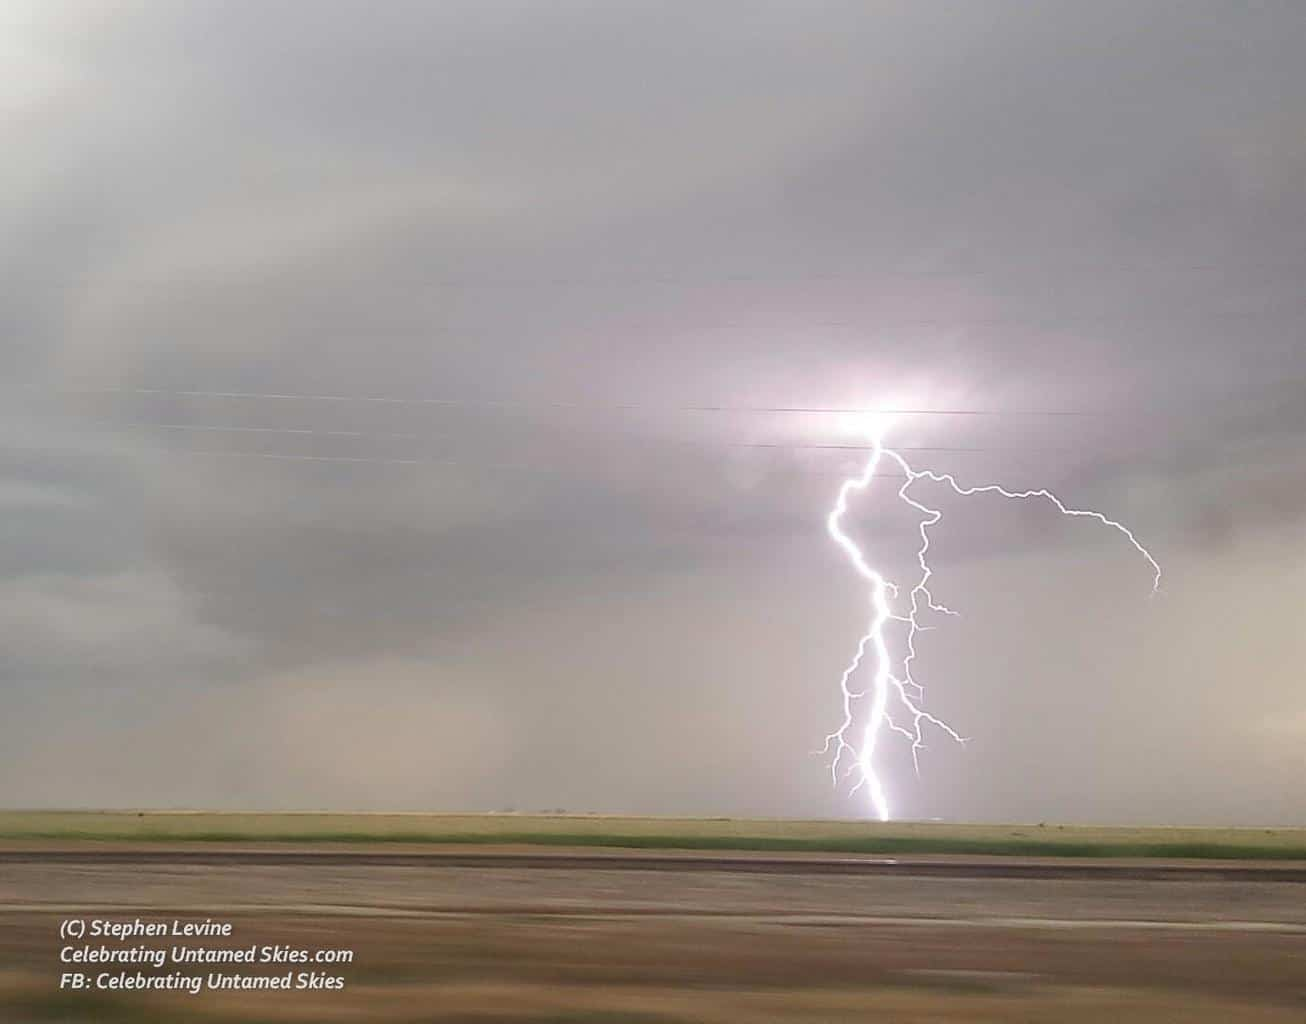 What a delight it is to capture this magnificent lightning bolt during a storm chase in the Texas Panhandle! June 1st, 2015